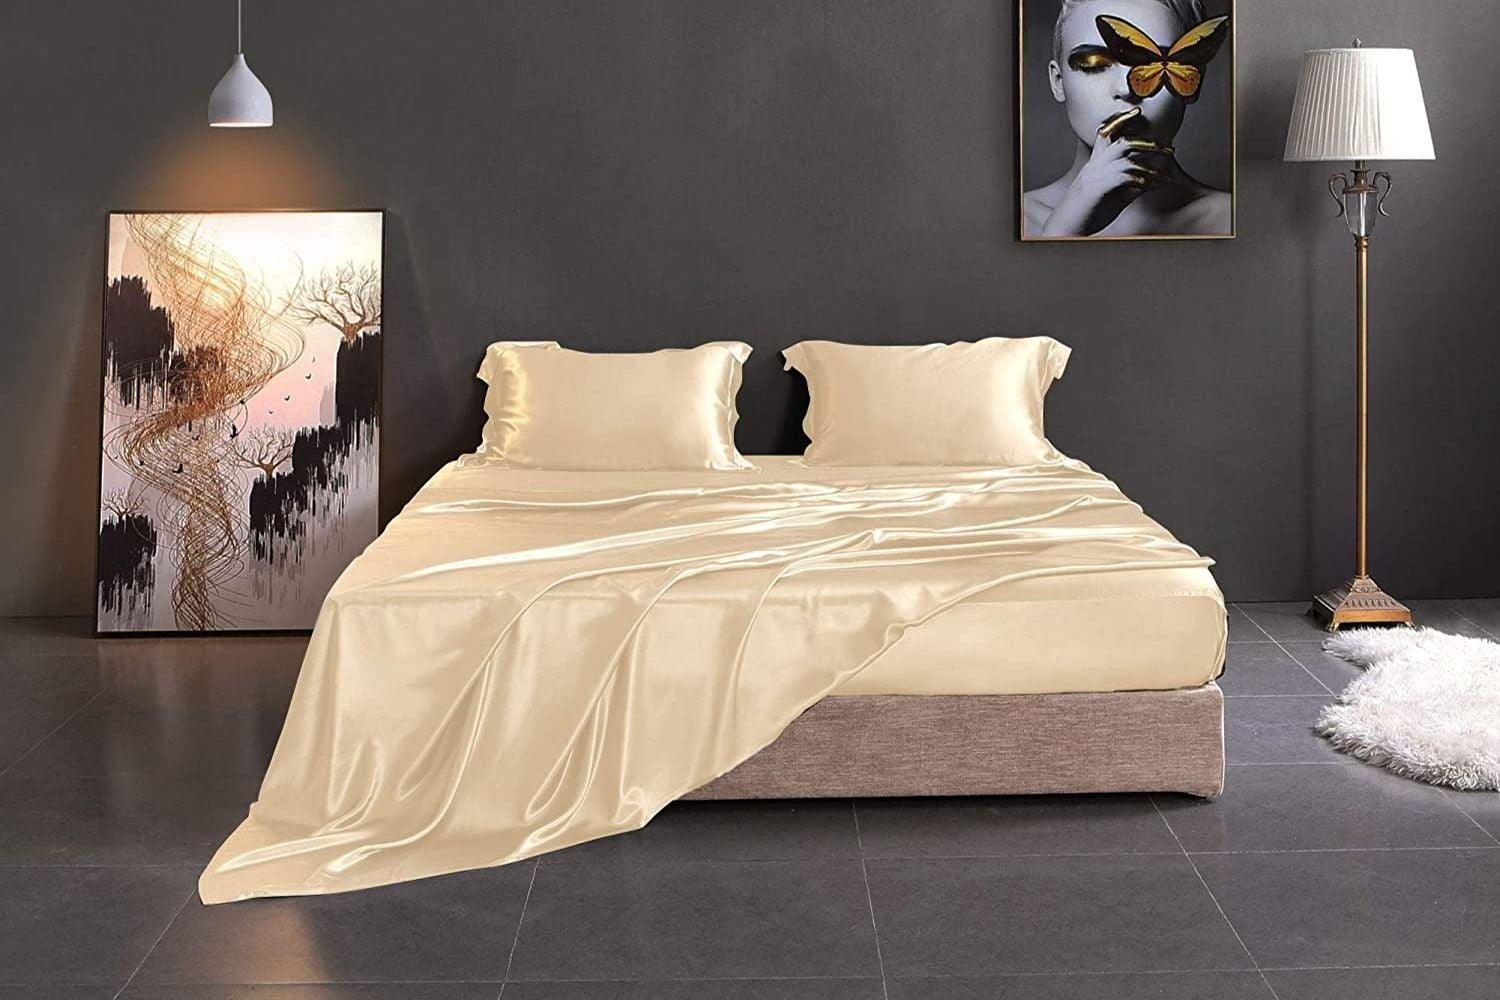 The Best Silk Sheets for Soft Comfort While Sleeping - Bob Vila